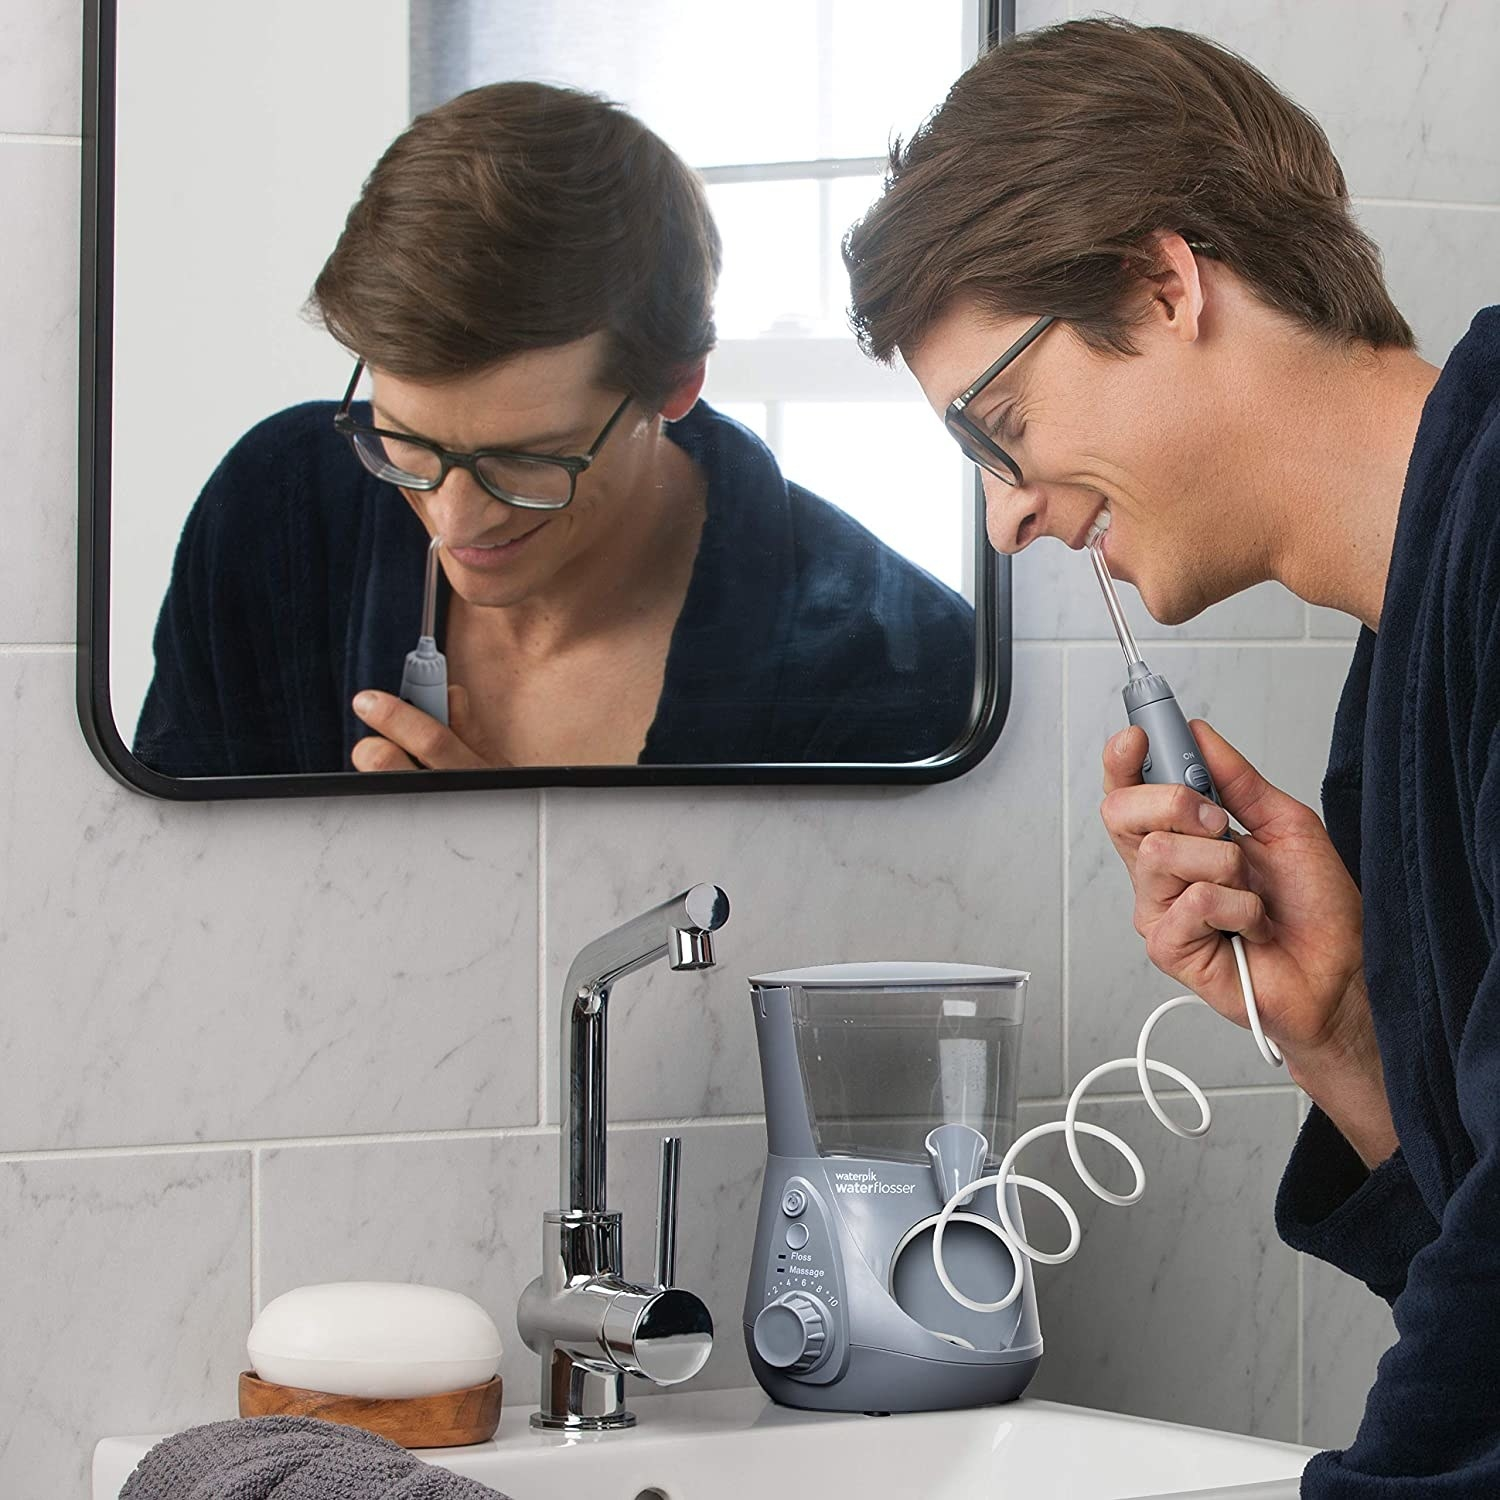 A person cleaning their teeth with a water flosser machine in their bathroom